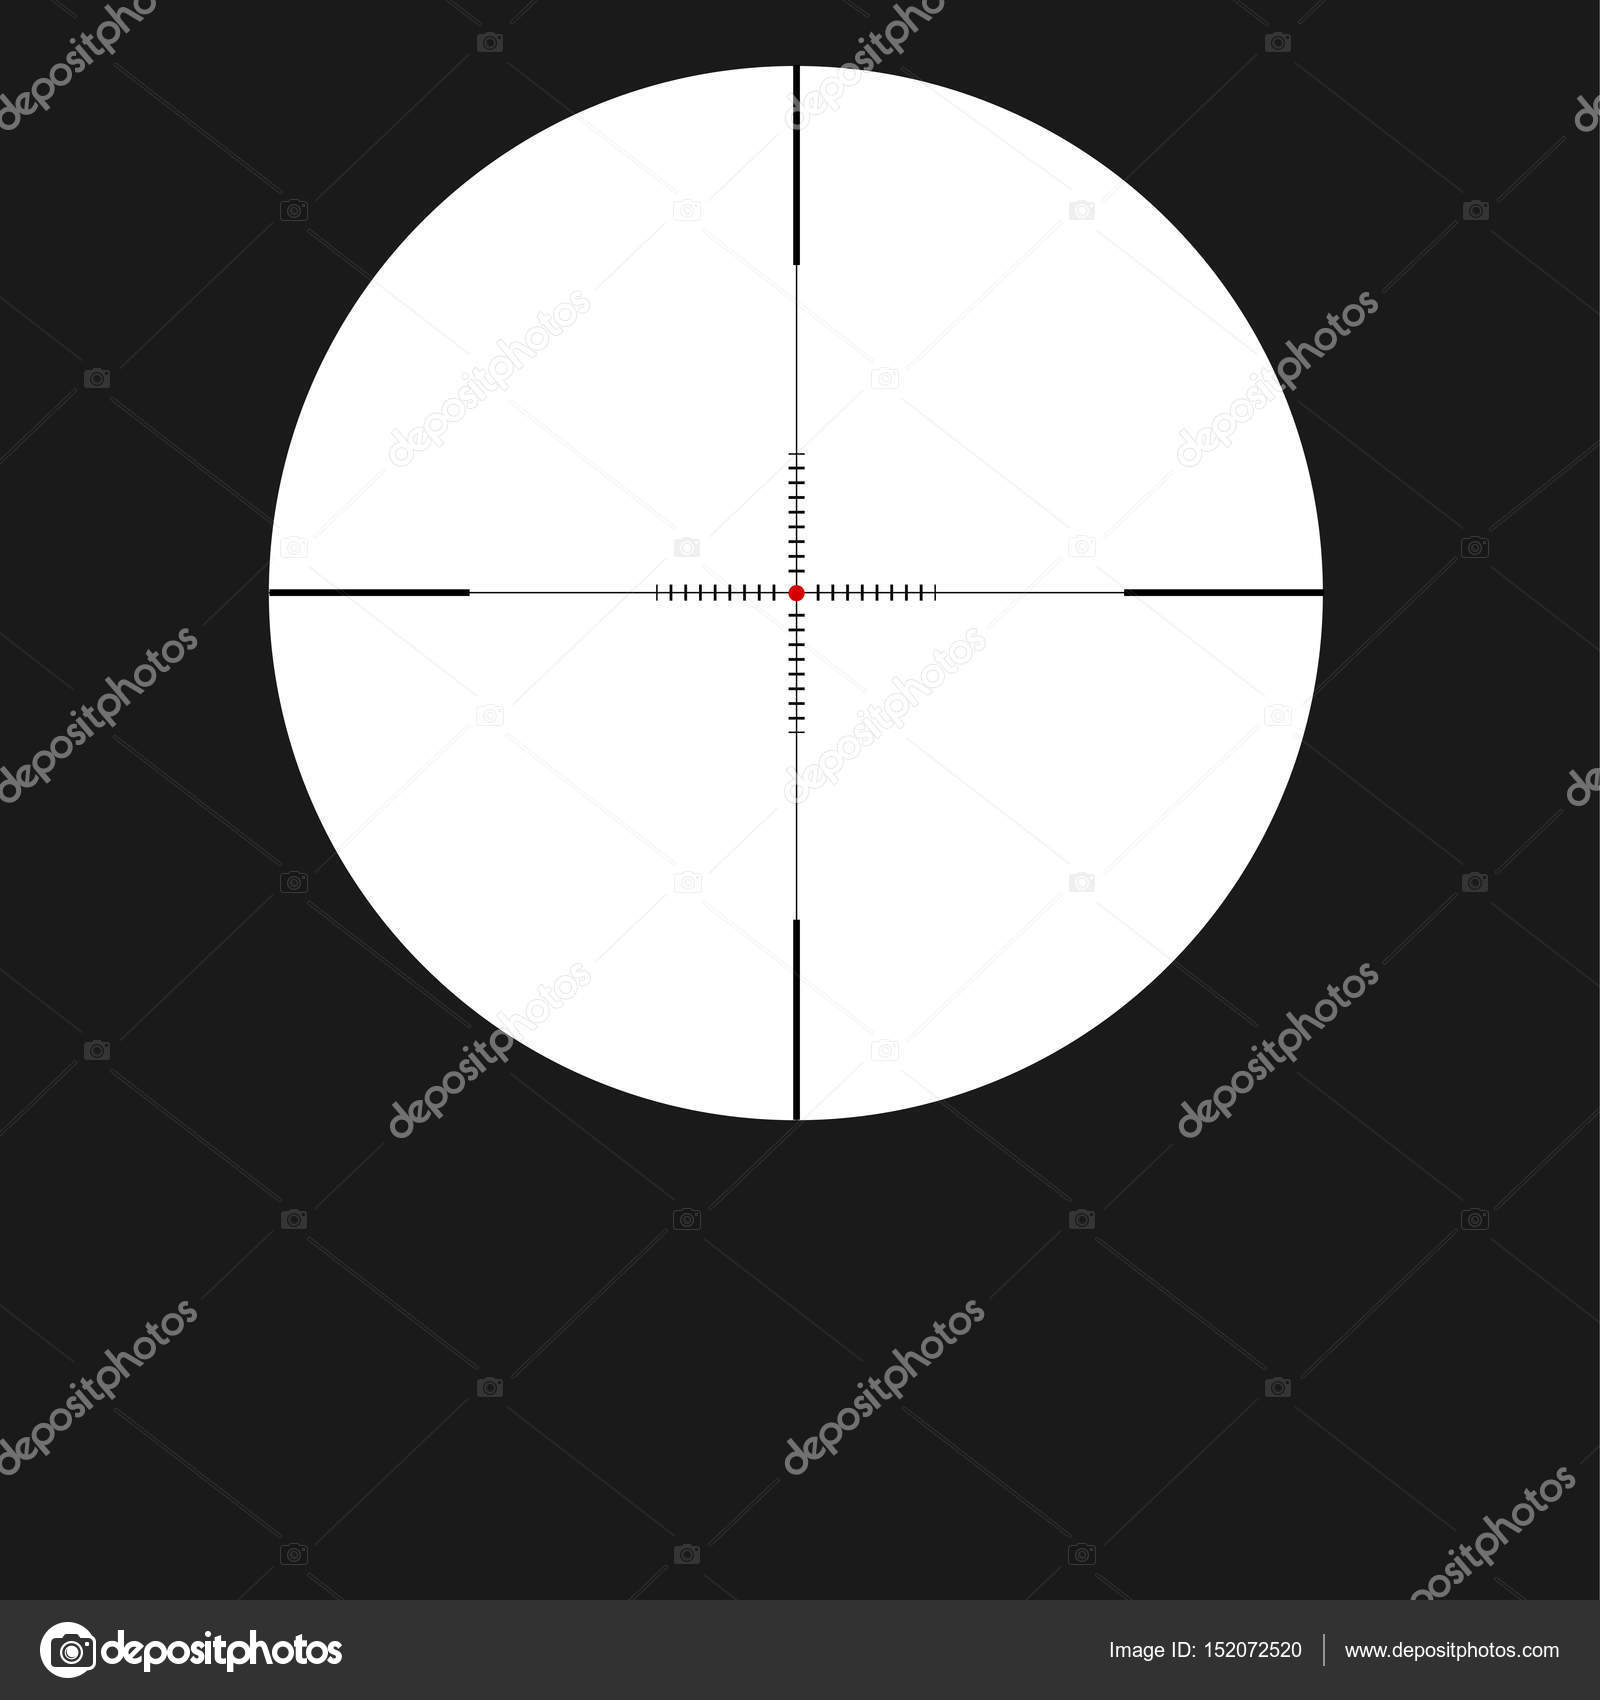 Crosshair sight icon reticle with red dot sight sniper symbol crosshair sight icon reticle with red dot sight sniper symbol isolated on white background buycottarizona Image collections